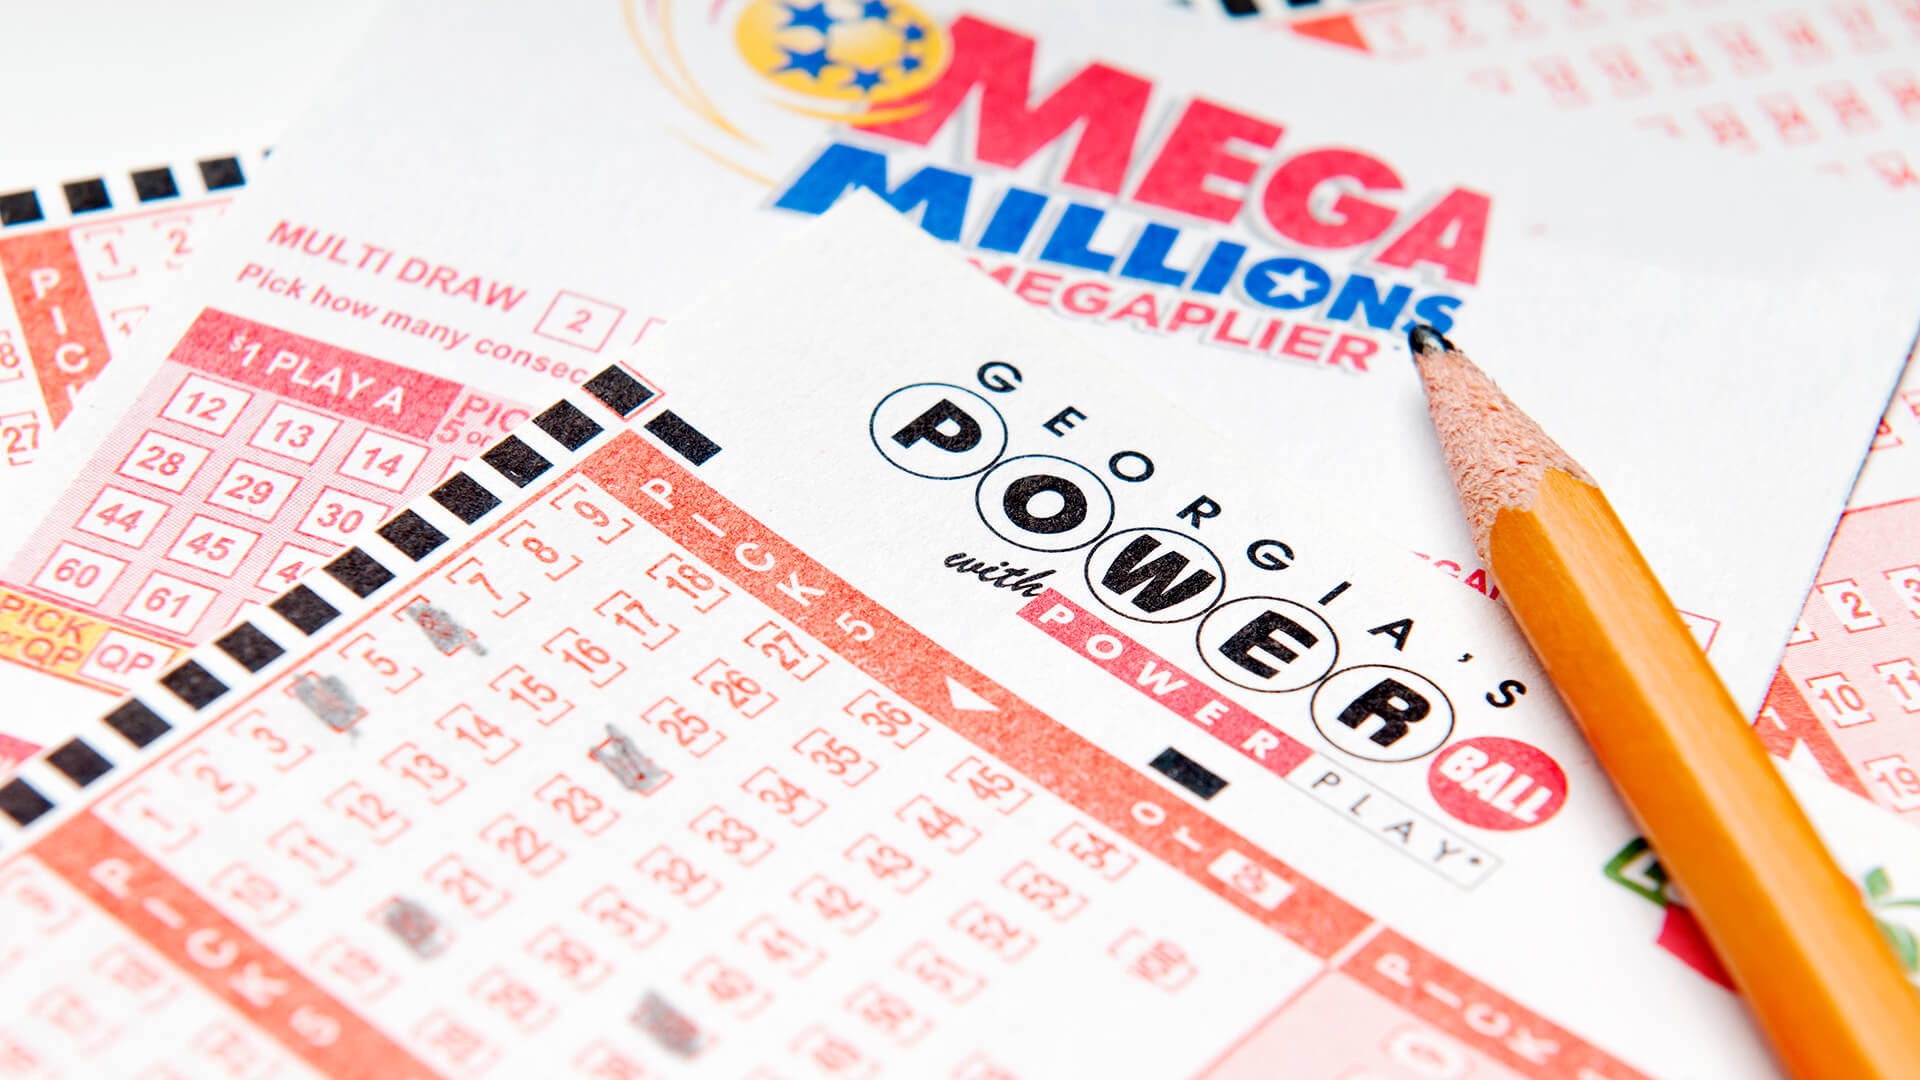 Alpharetta, GA, USA - Feruary 01, 2014 - Powerball and Mega Million lottery forms.